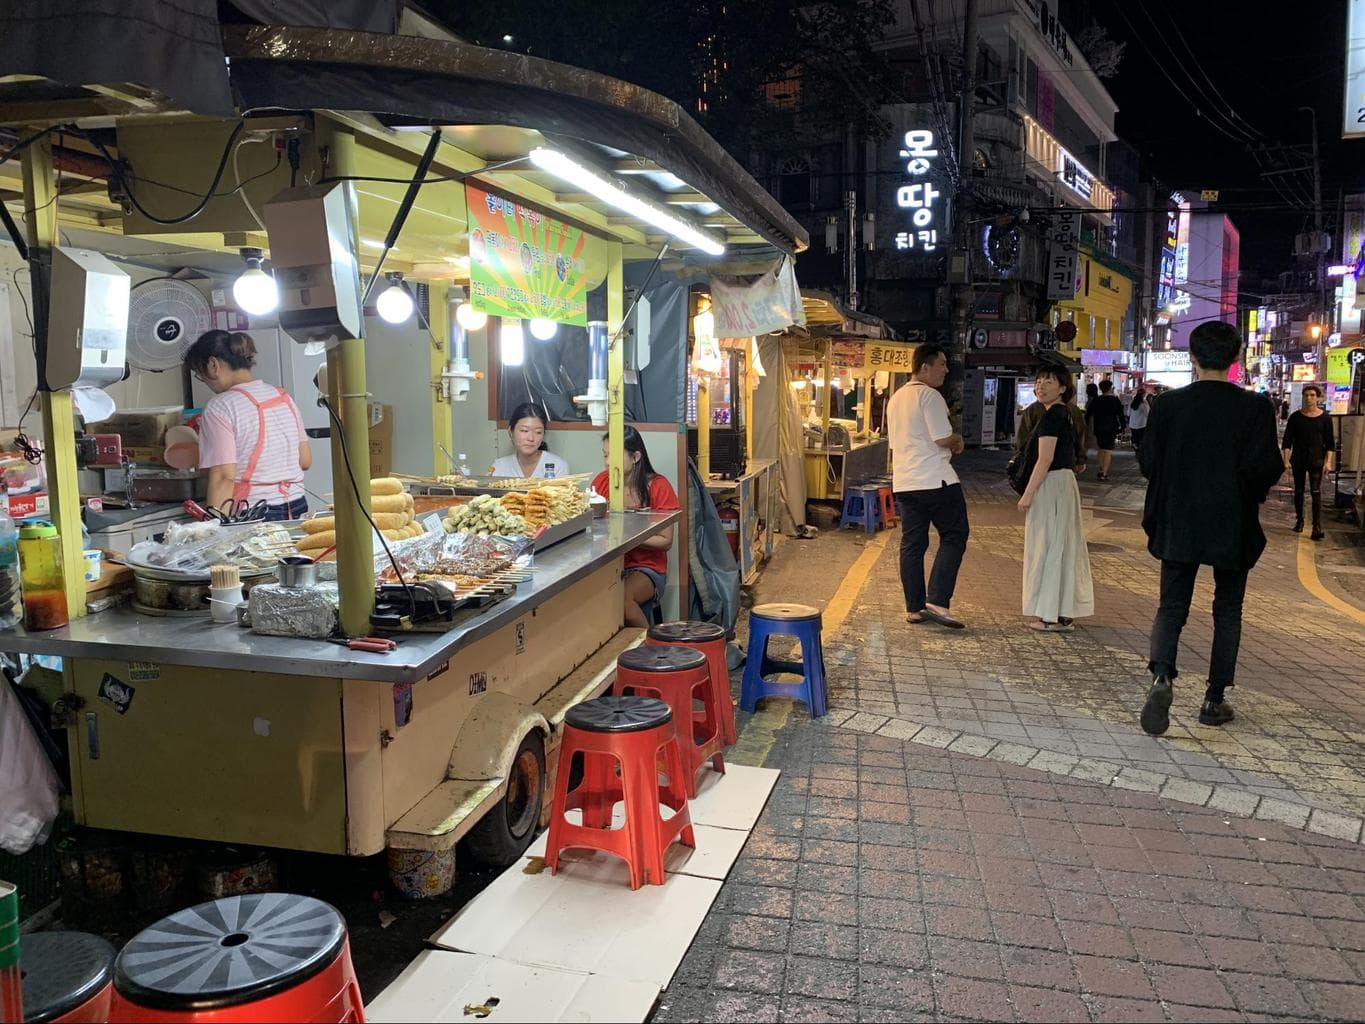 Street food stall in Hongdae